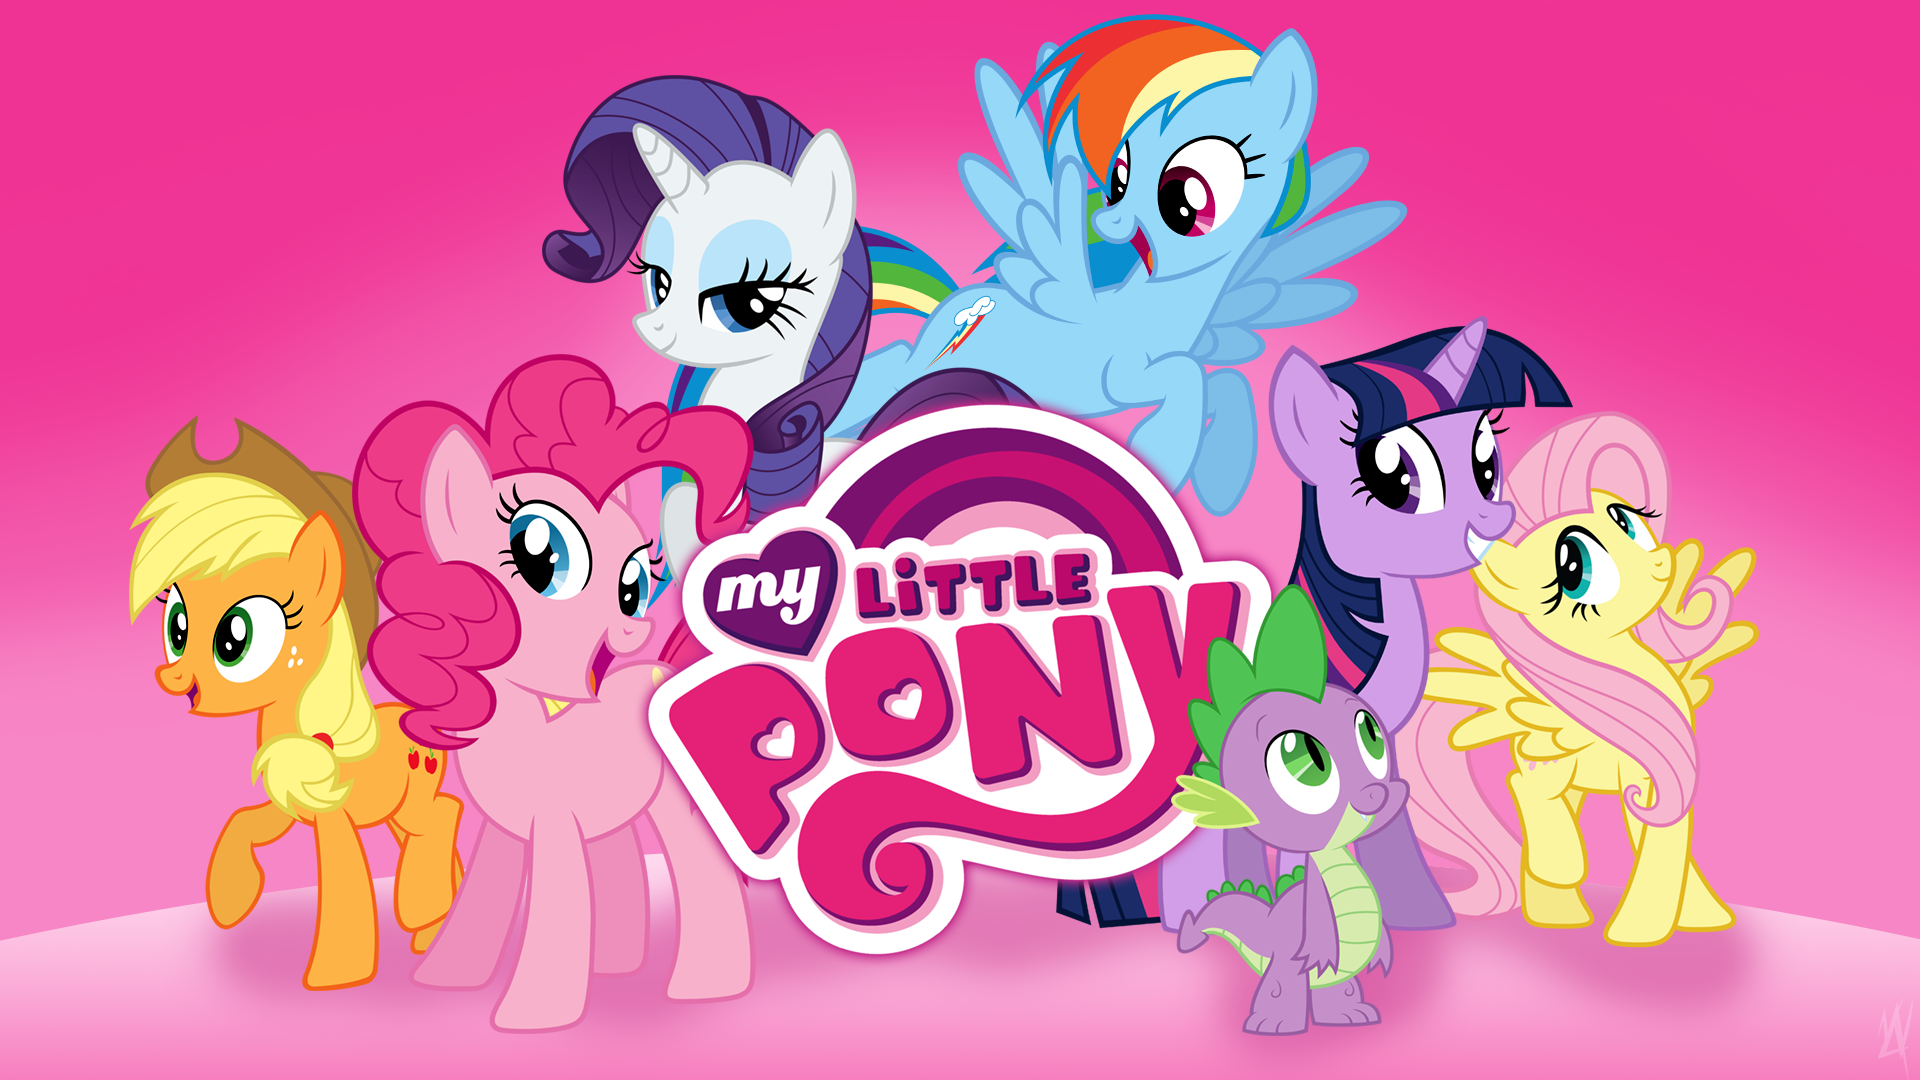 my little pony birthday wallpaper - photo #11